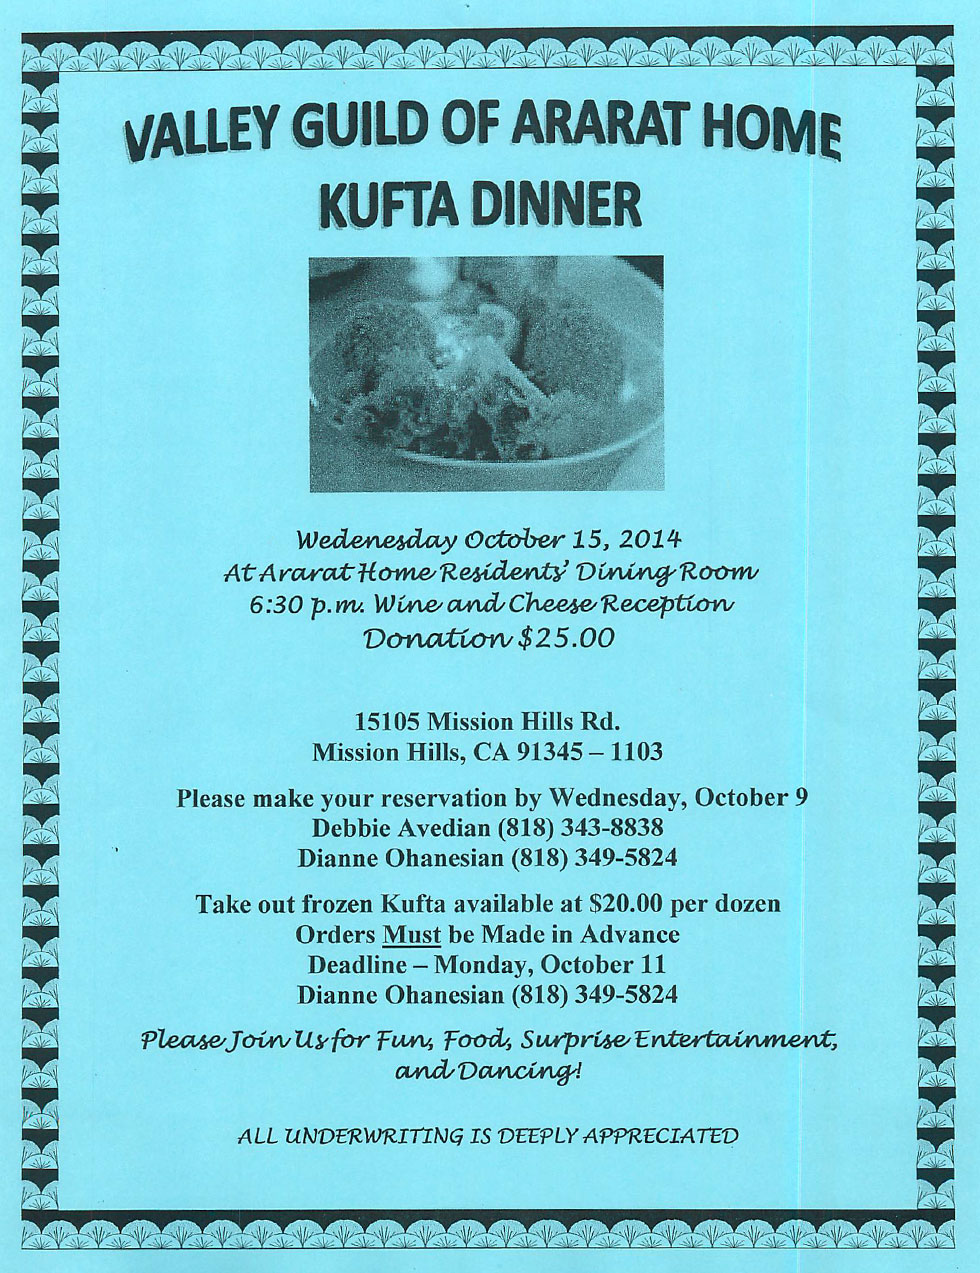 Kufta-Dinner-by-Valley-Guild